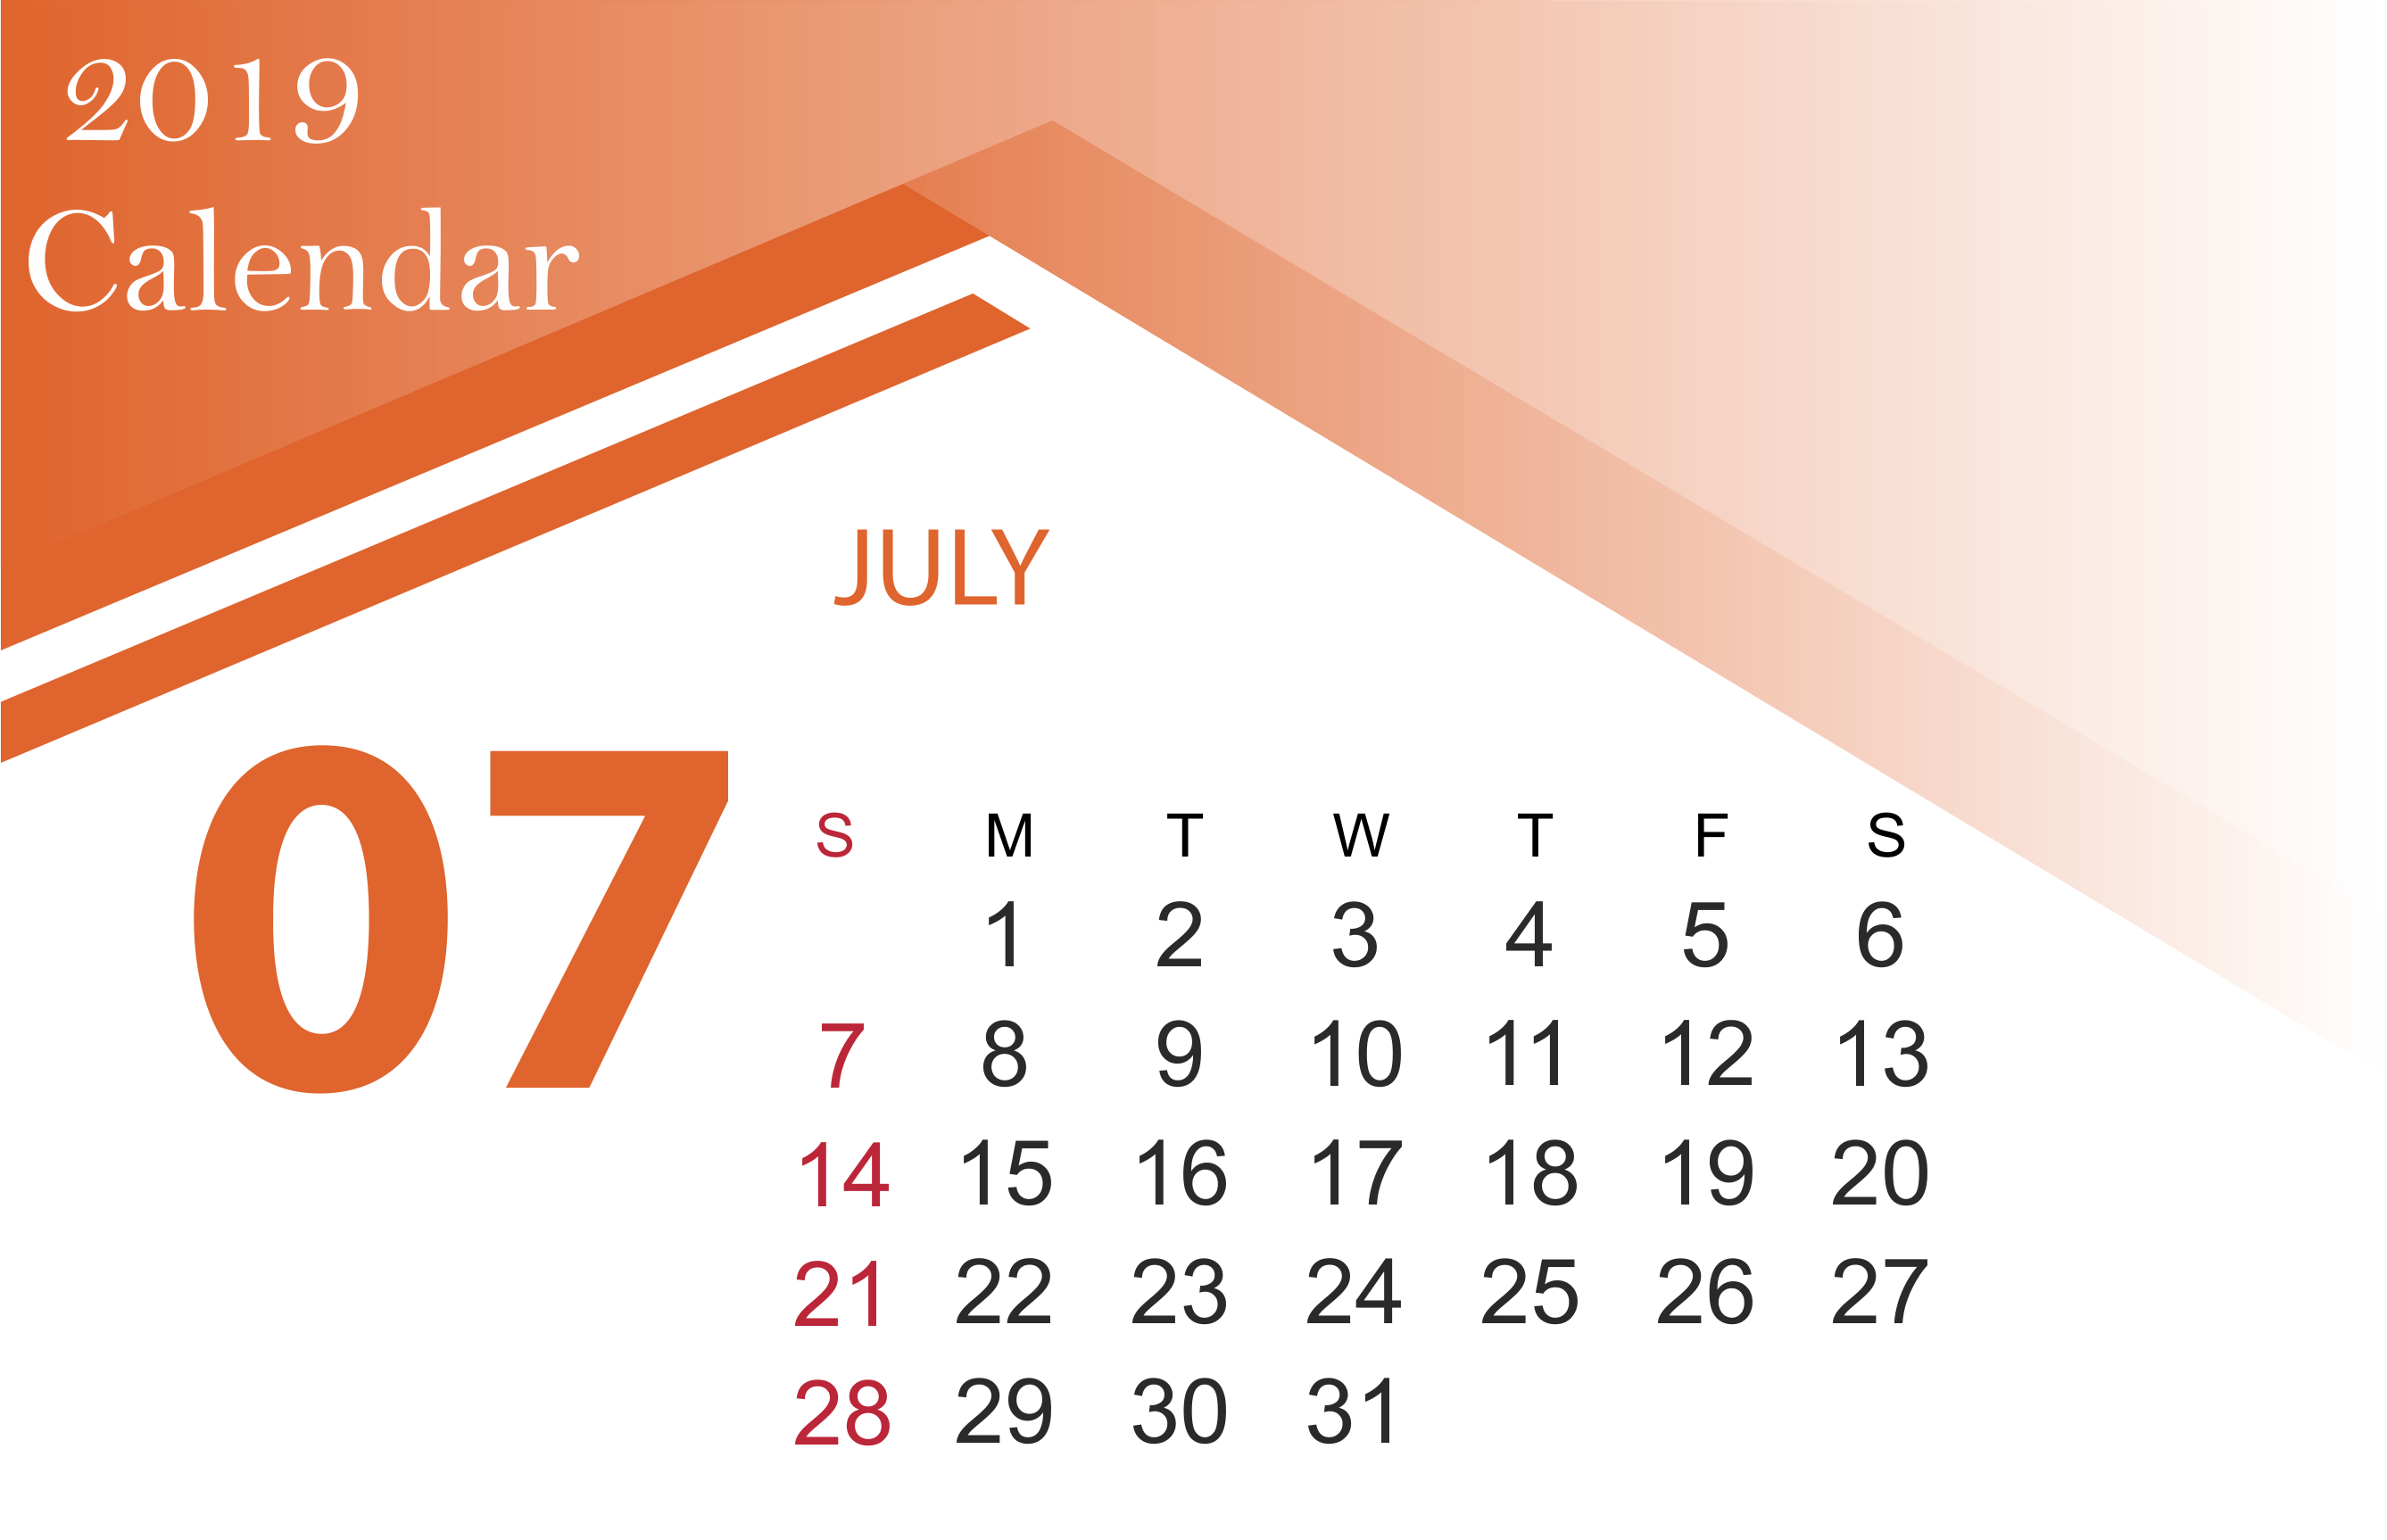 July 2019 Calendar Printable Template With Holidays